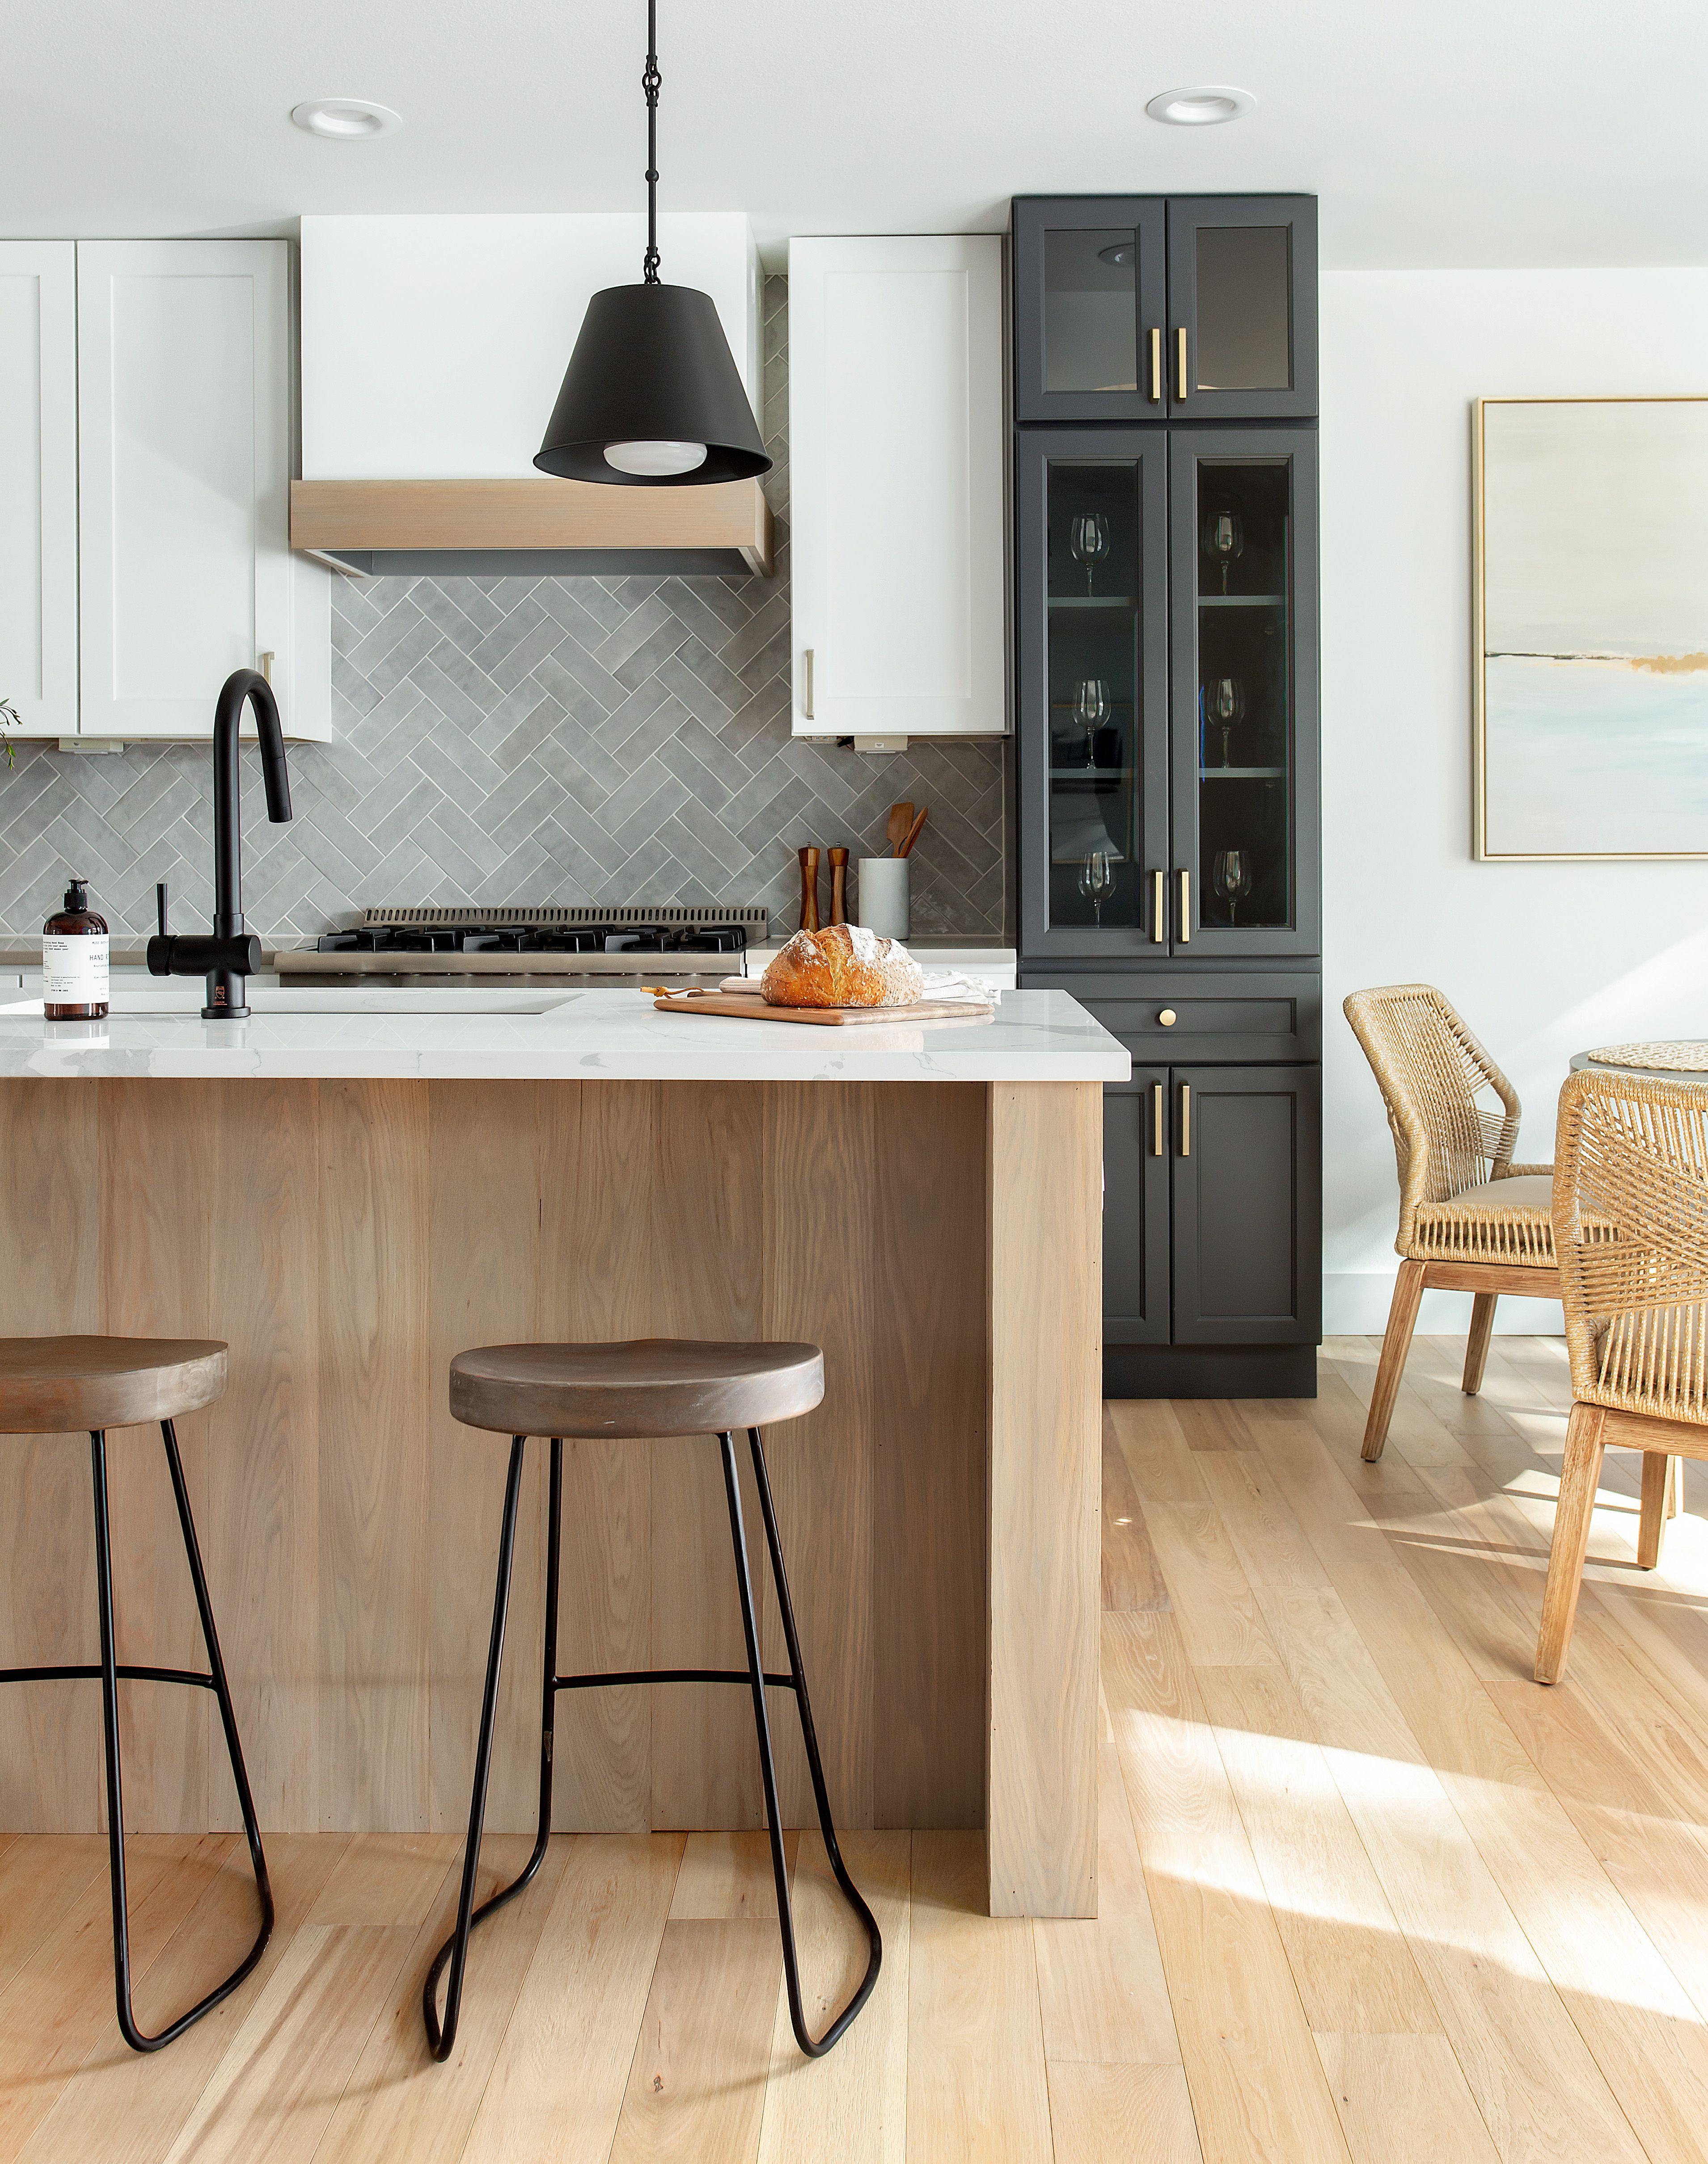 Coastal contemporary finishes and furniture designed by